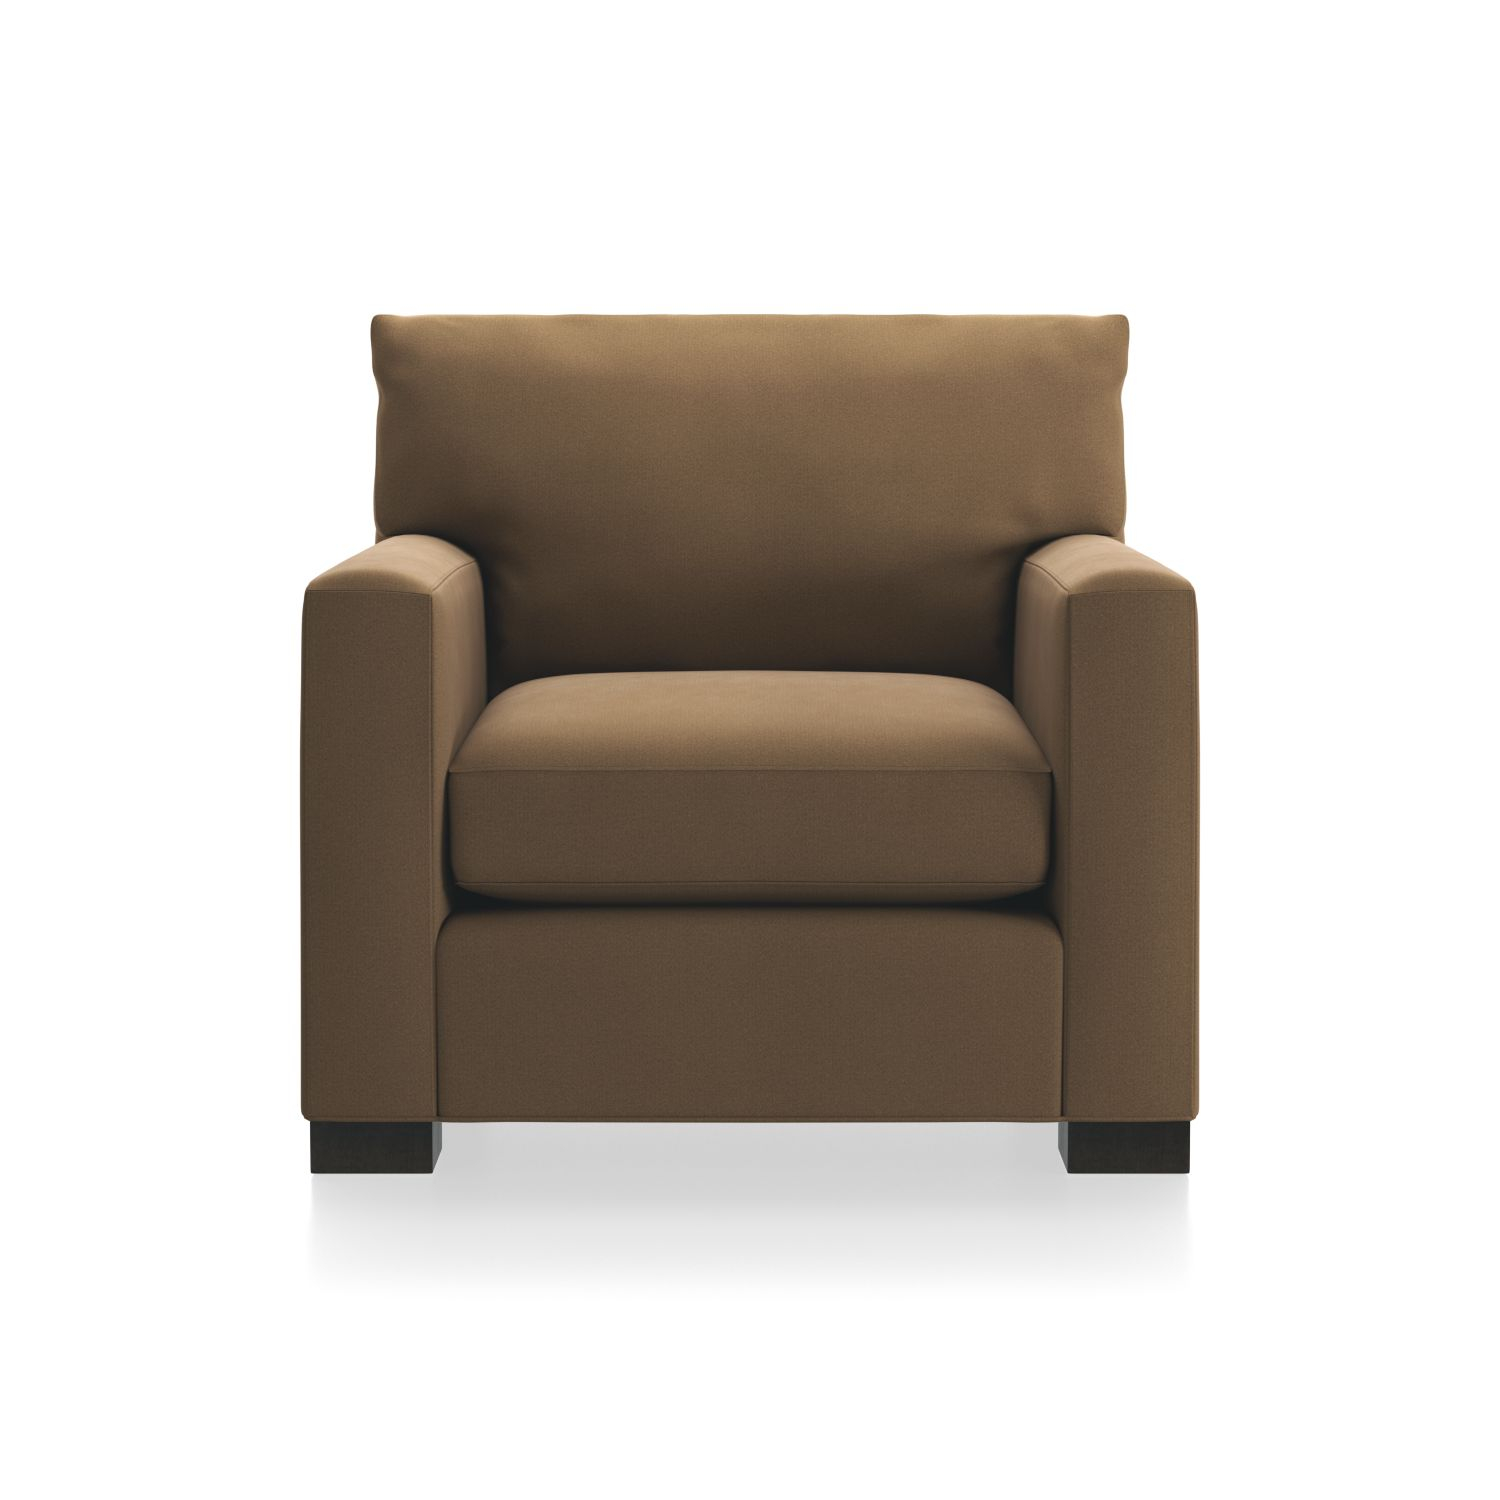 Axis Ii 2 Seat Brown Sleeper Sofa + Reviews | Crate And Barrel Pertaining To Alder Grande Ii Swivel Chairs (View 7 of 25)